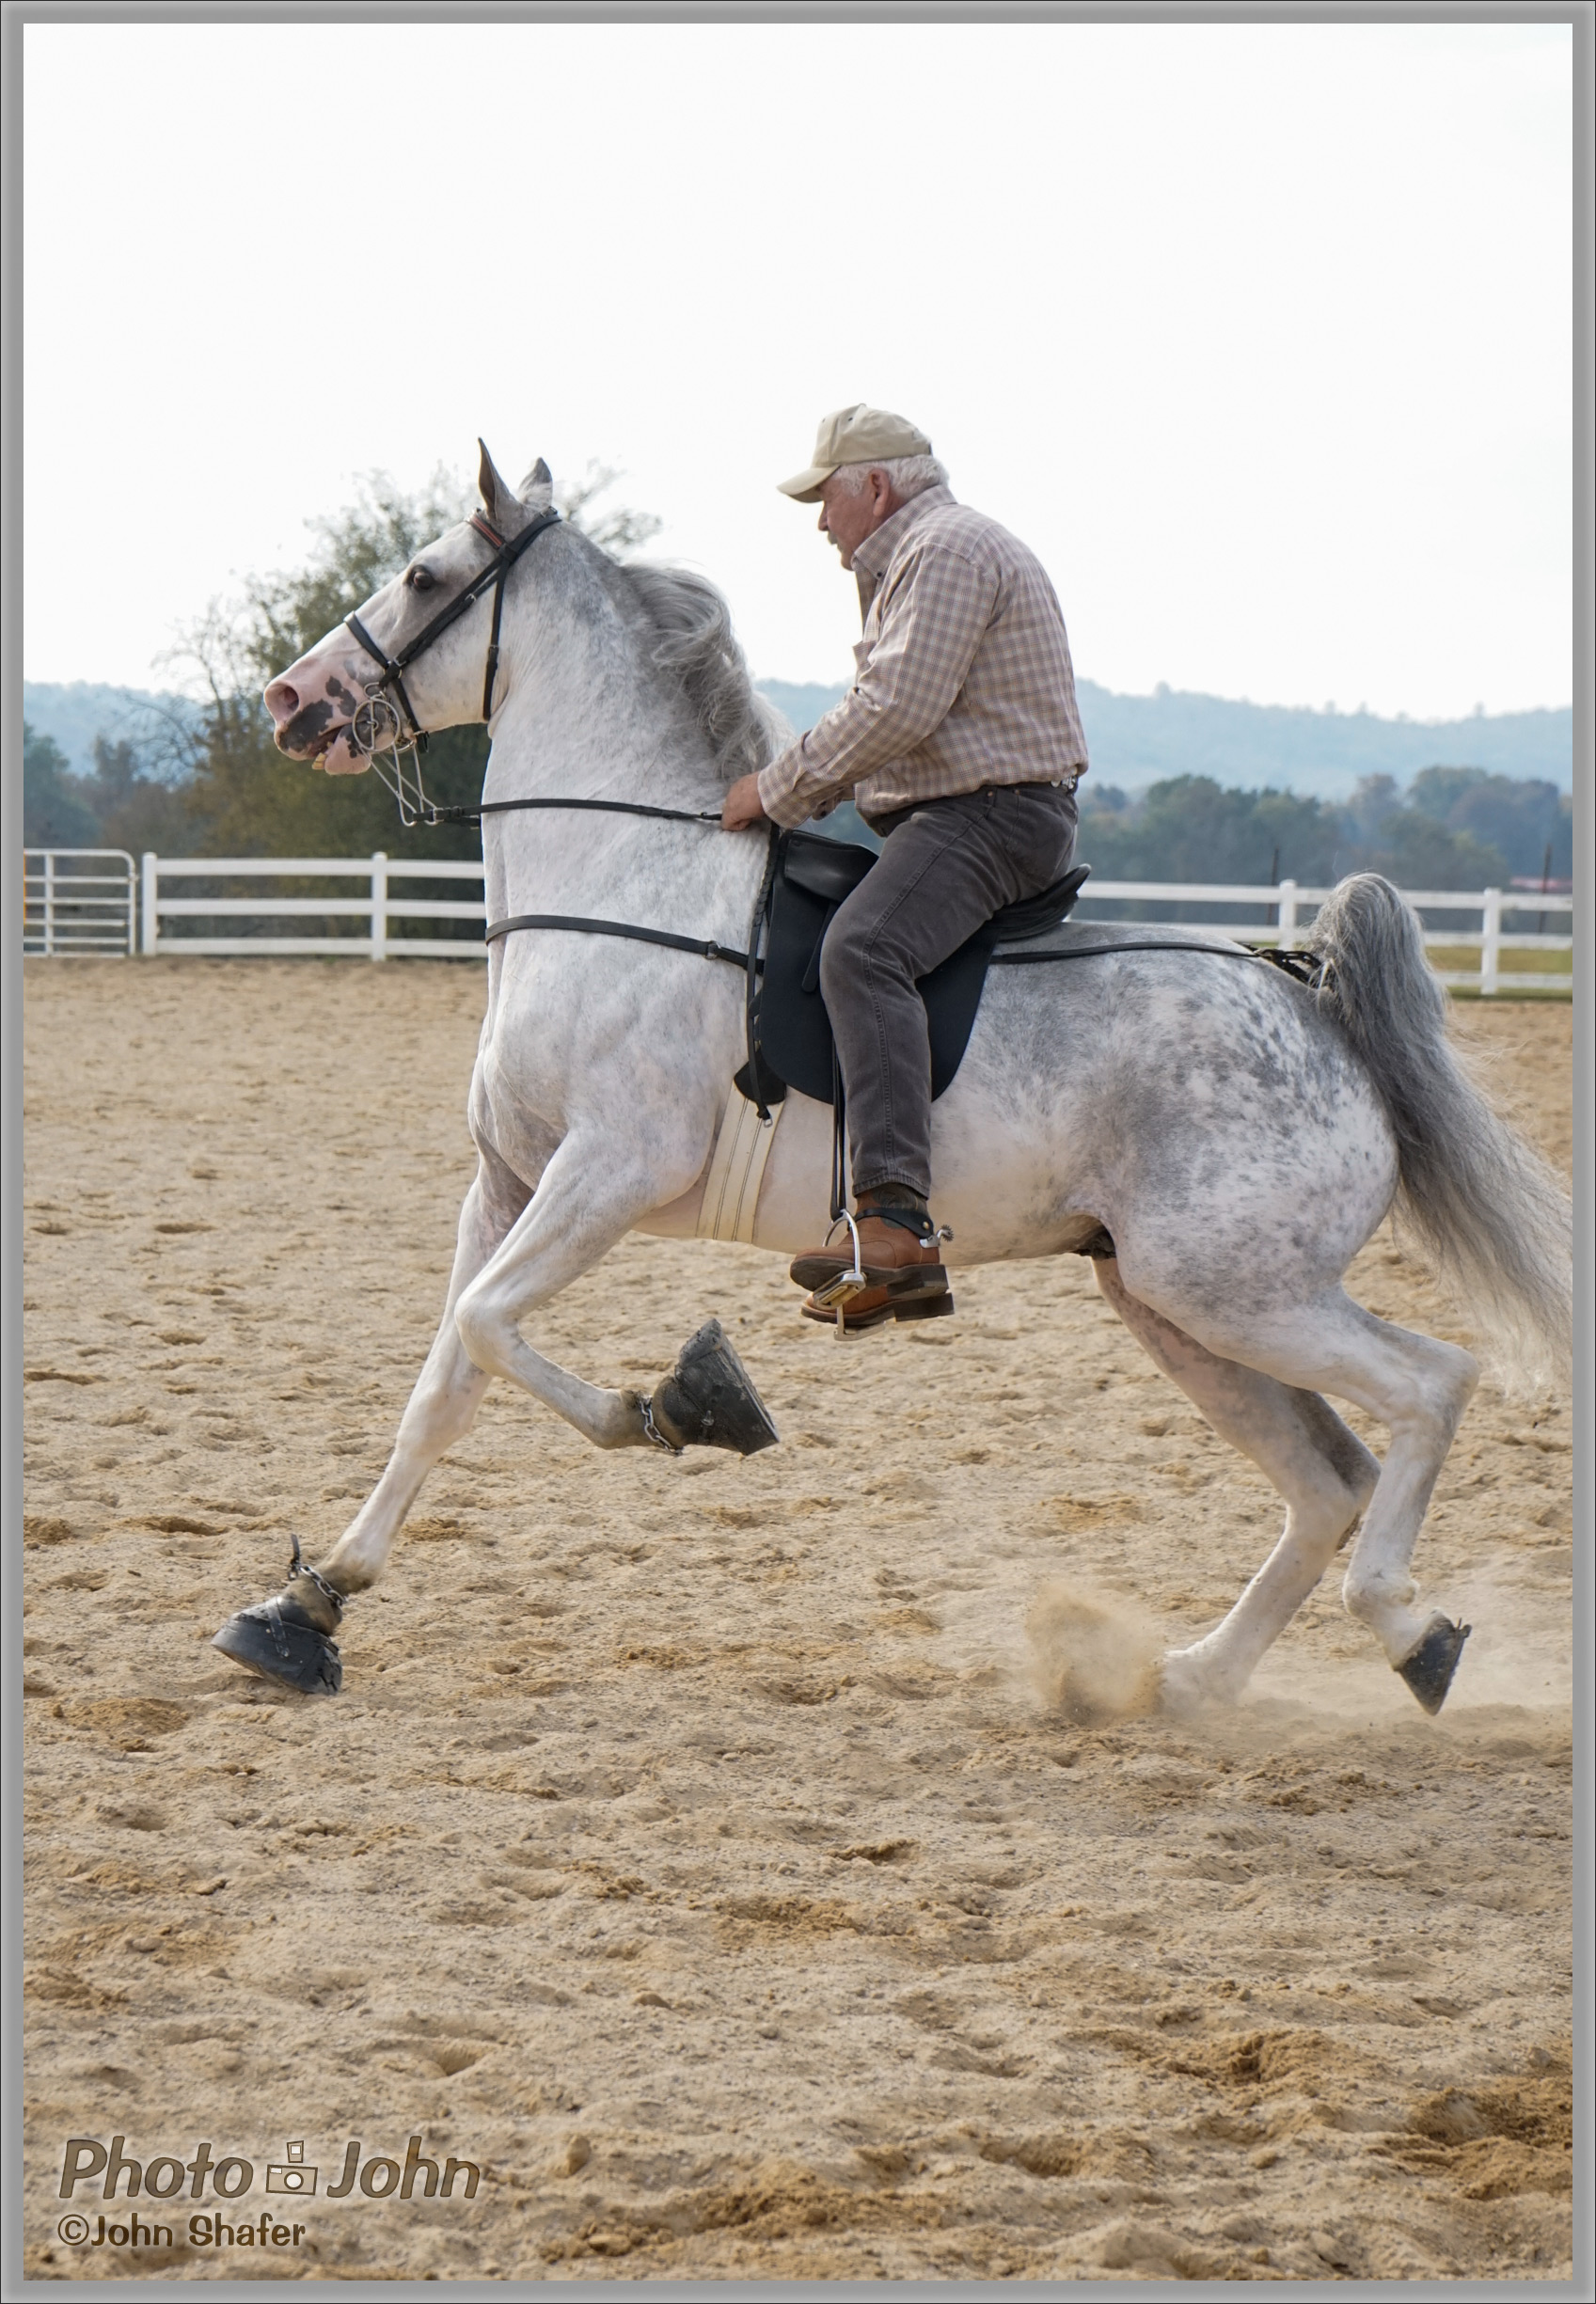 Sony Alpha A7 - Tennessee Walking Horse Cantering